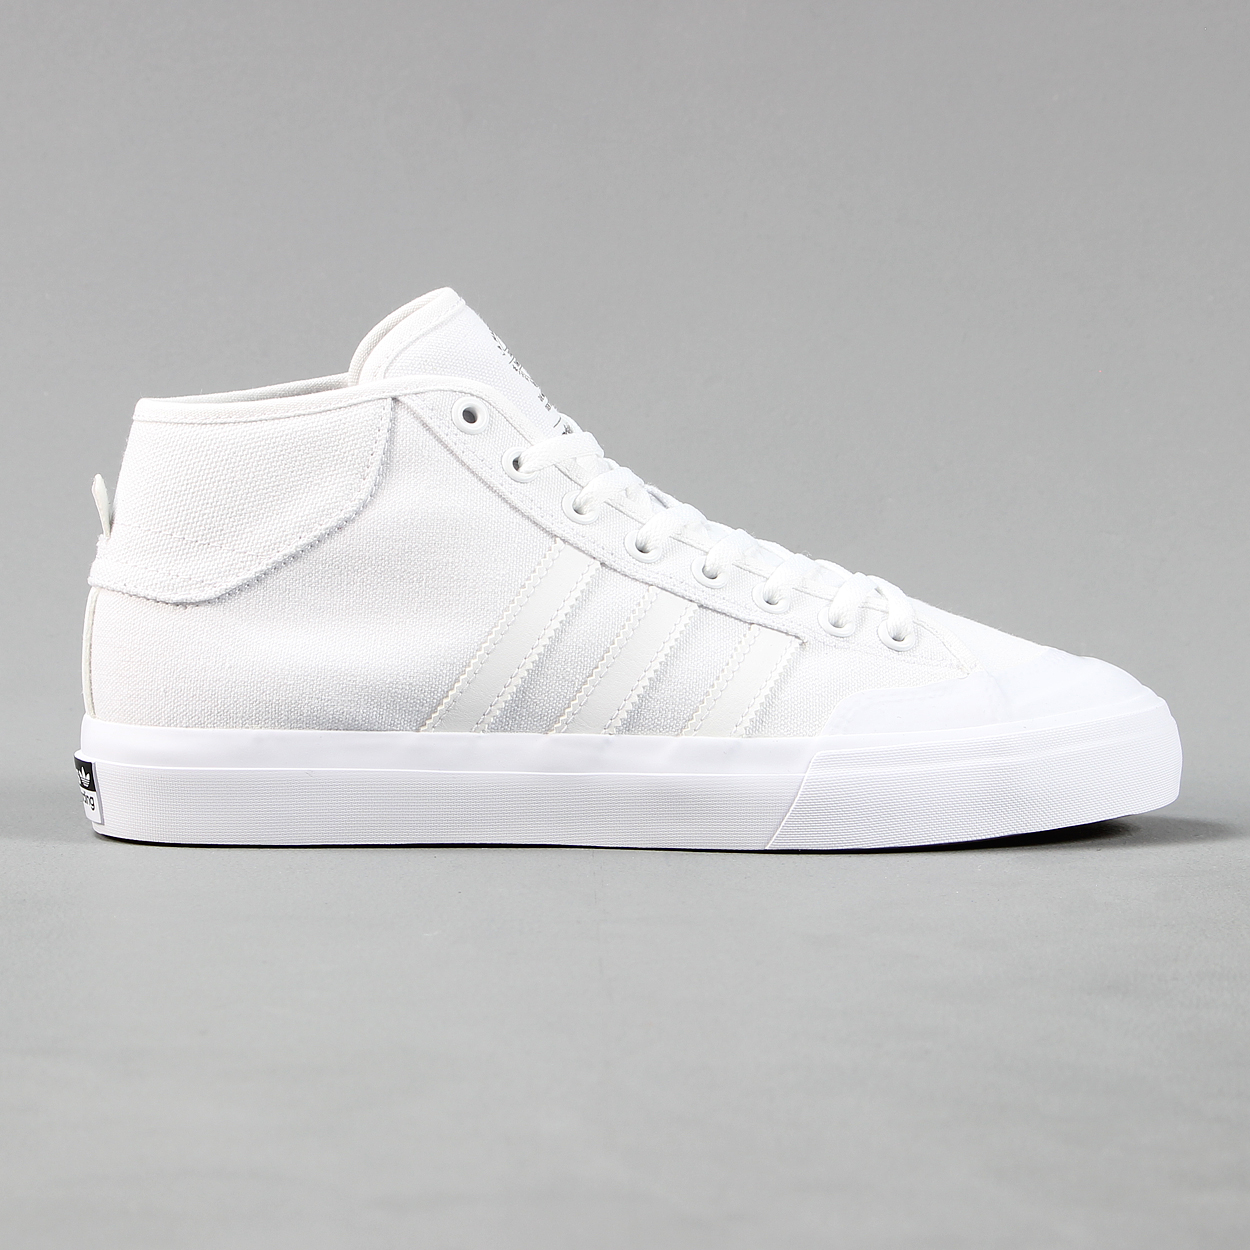 e9aed7154b Adidas Skateboarding mid tops white canvas mens trainers shoes £43.40